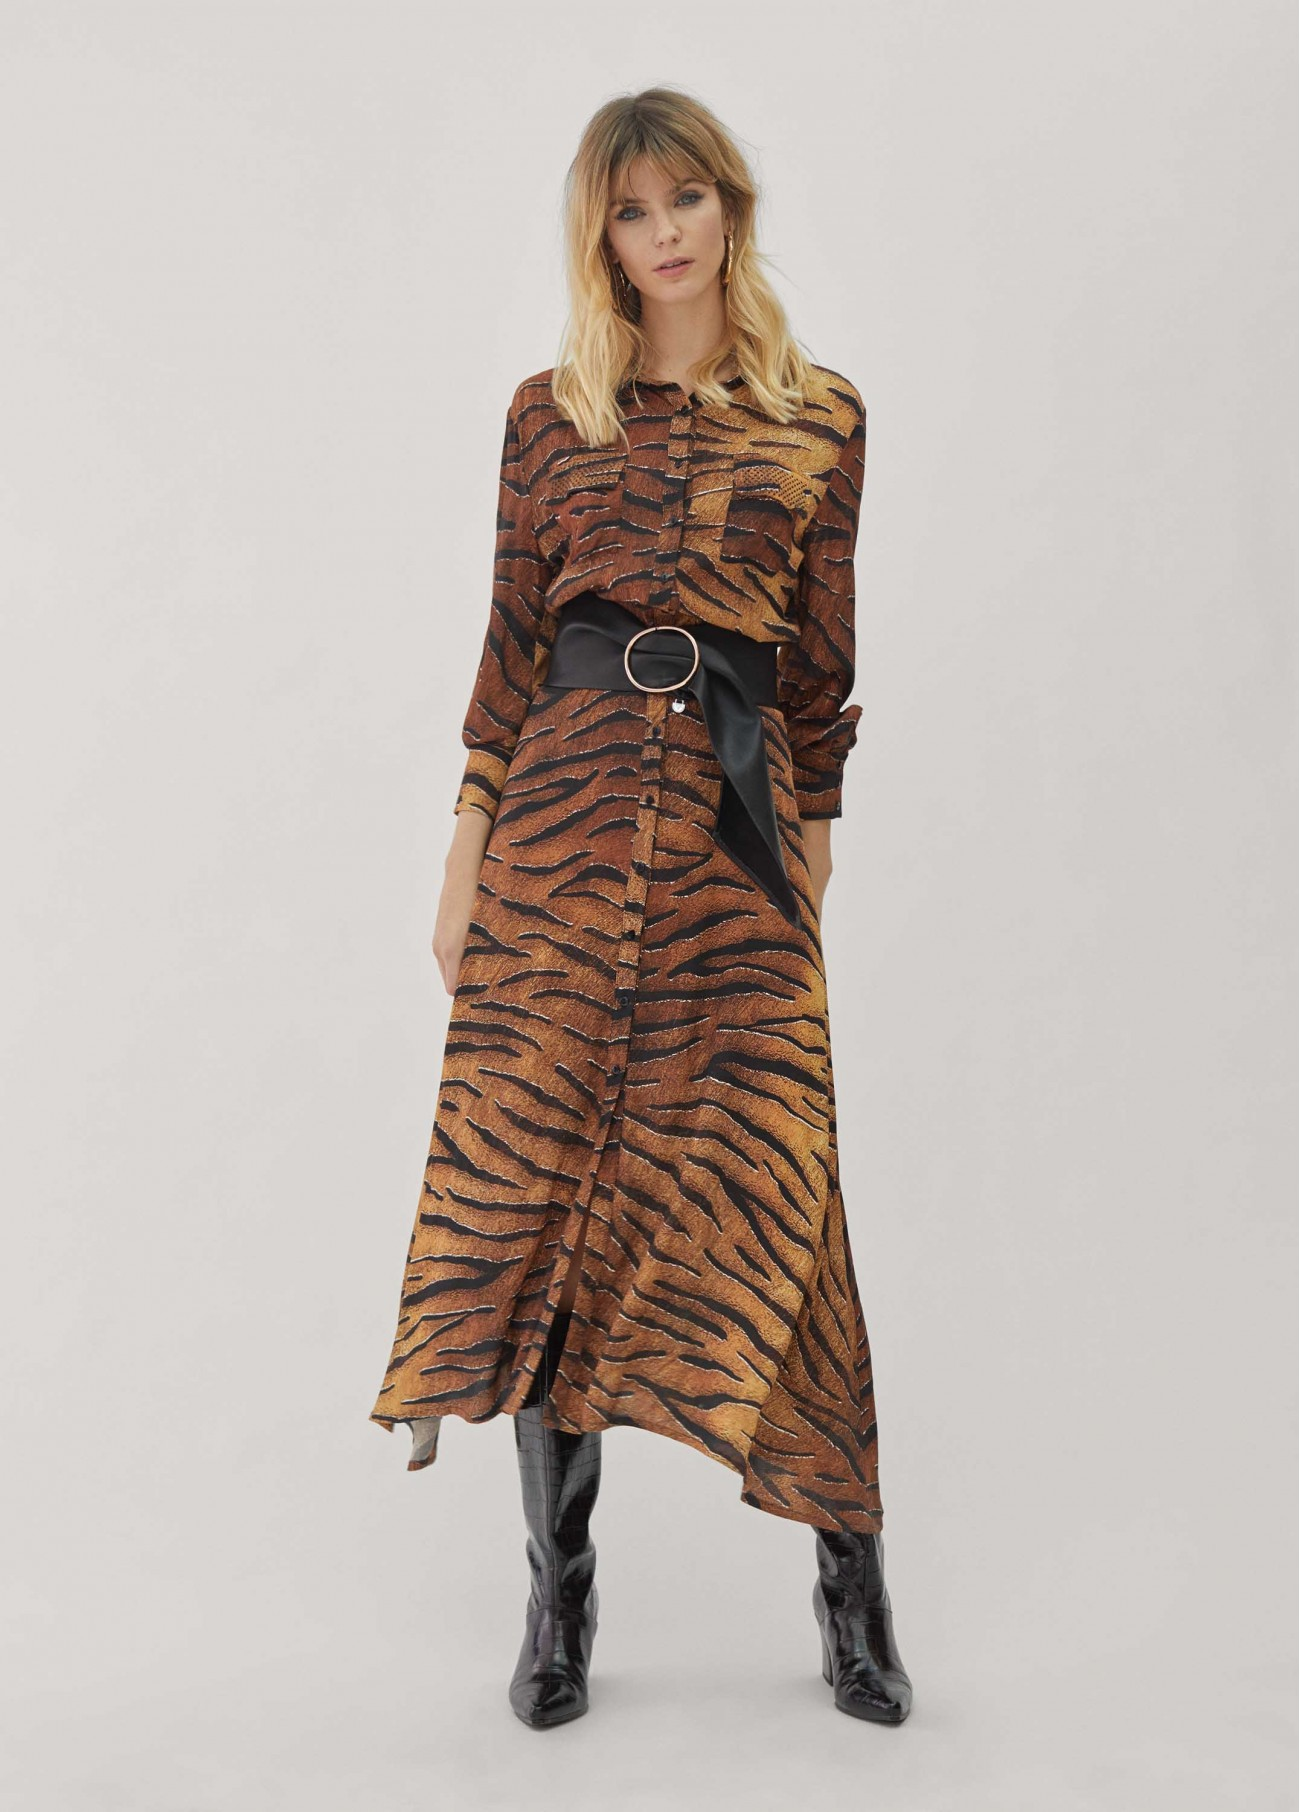 Vestido largo animal print,  2